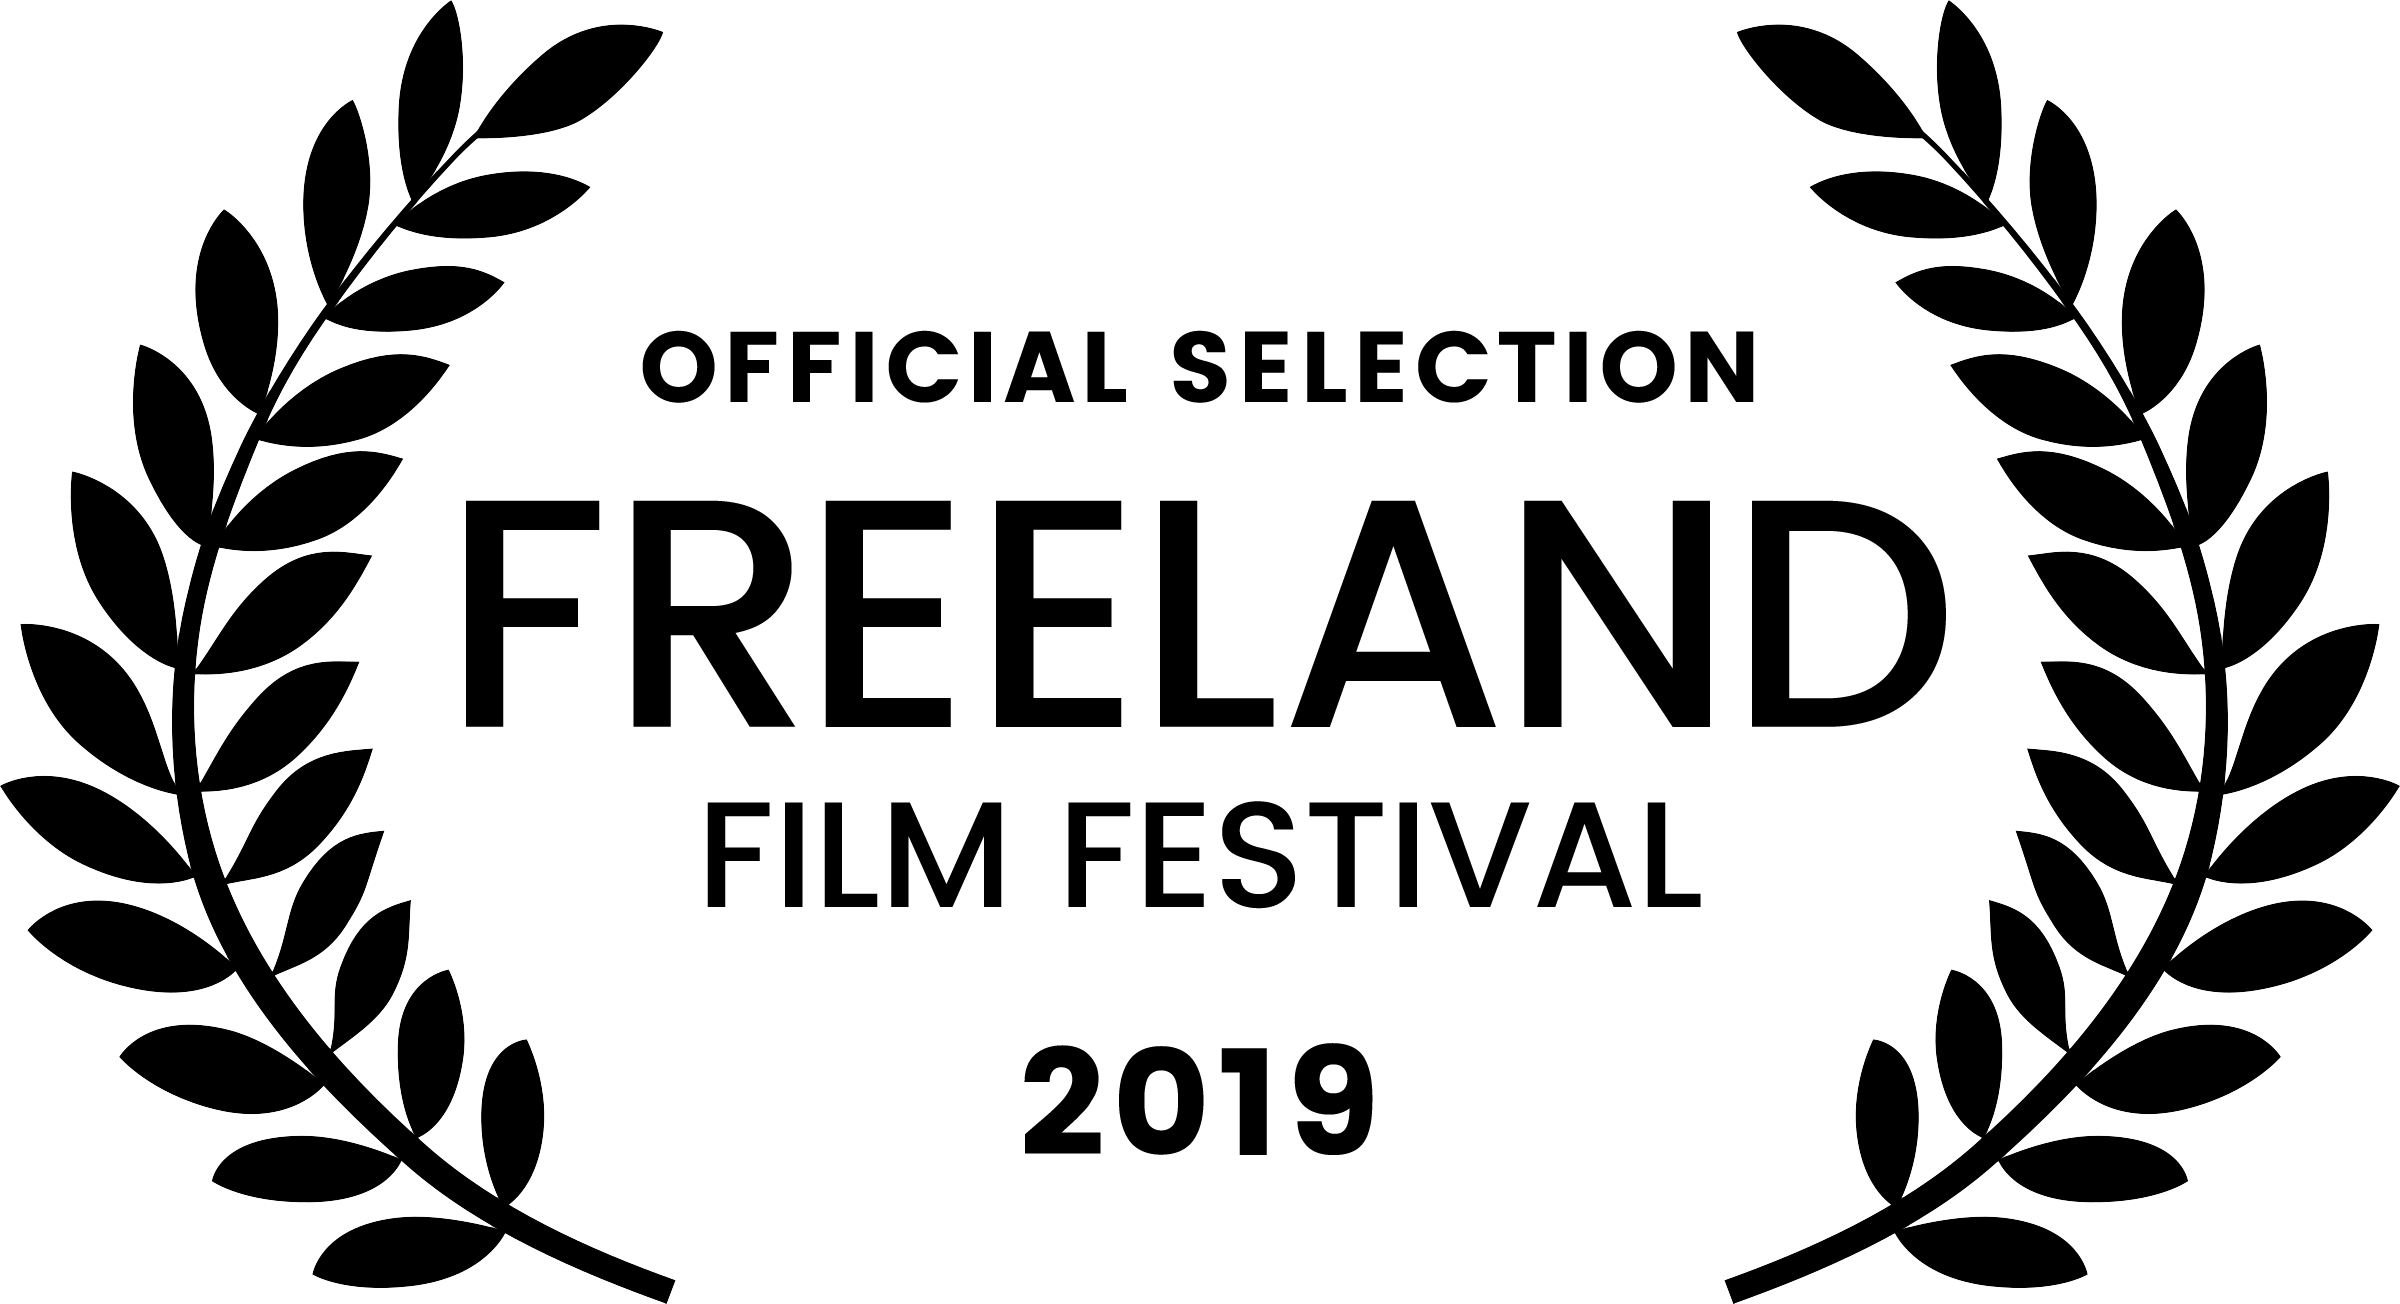 Official Selection Freeland Film Festival